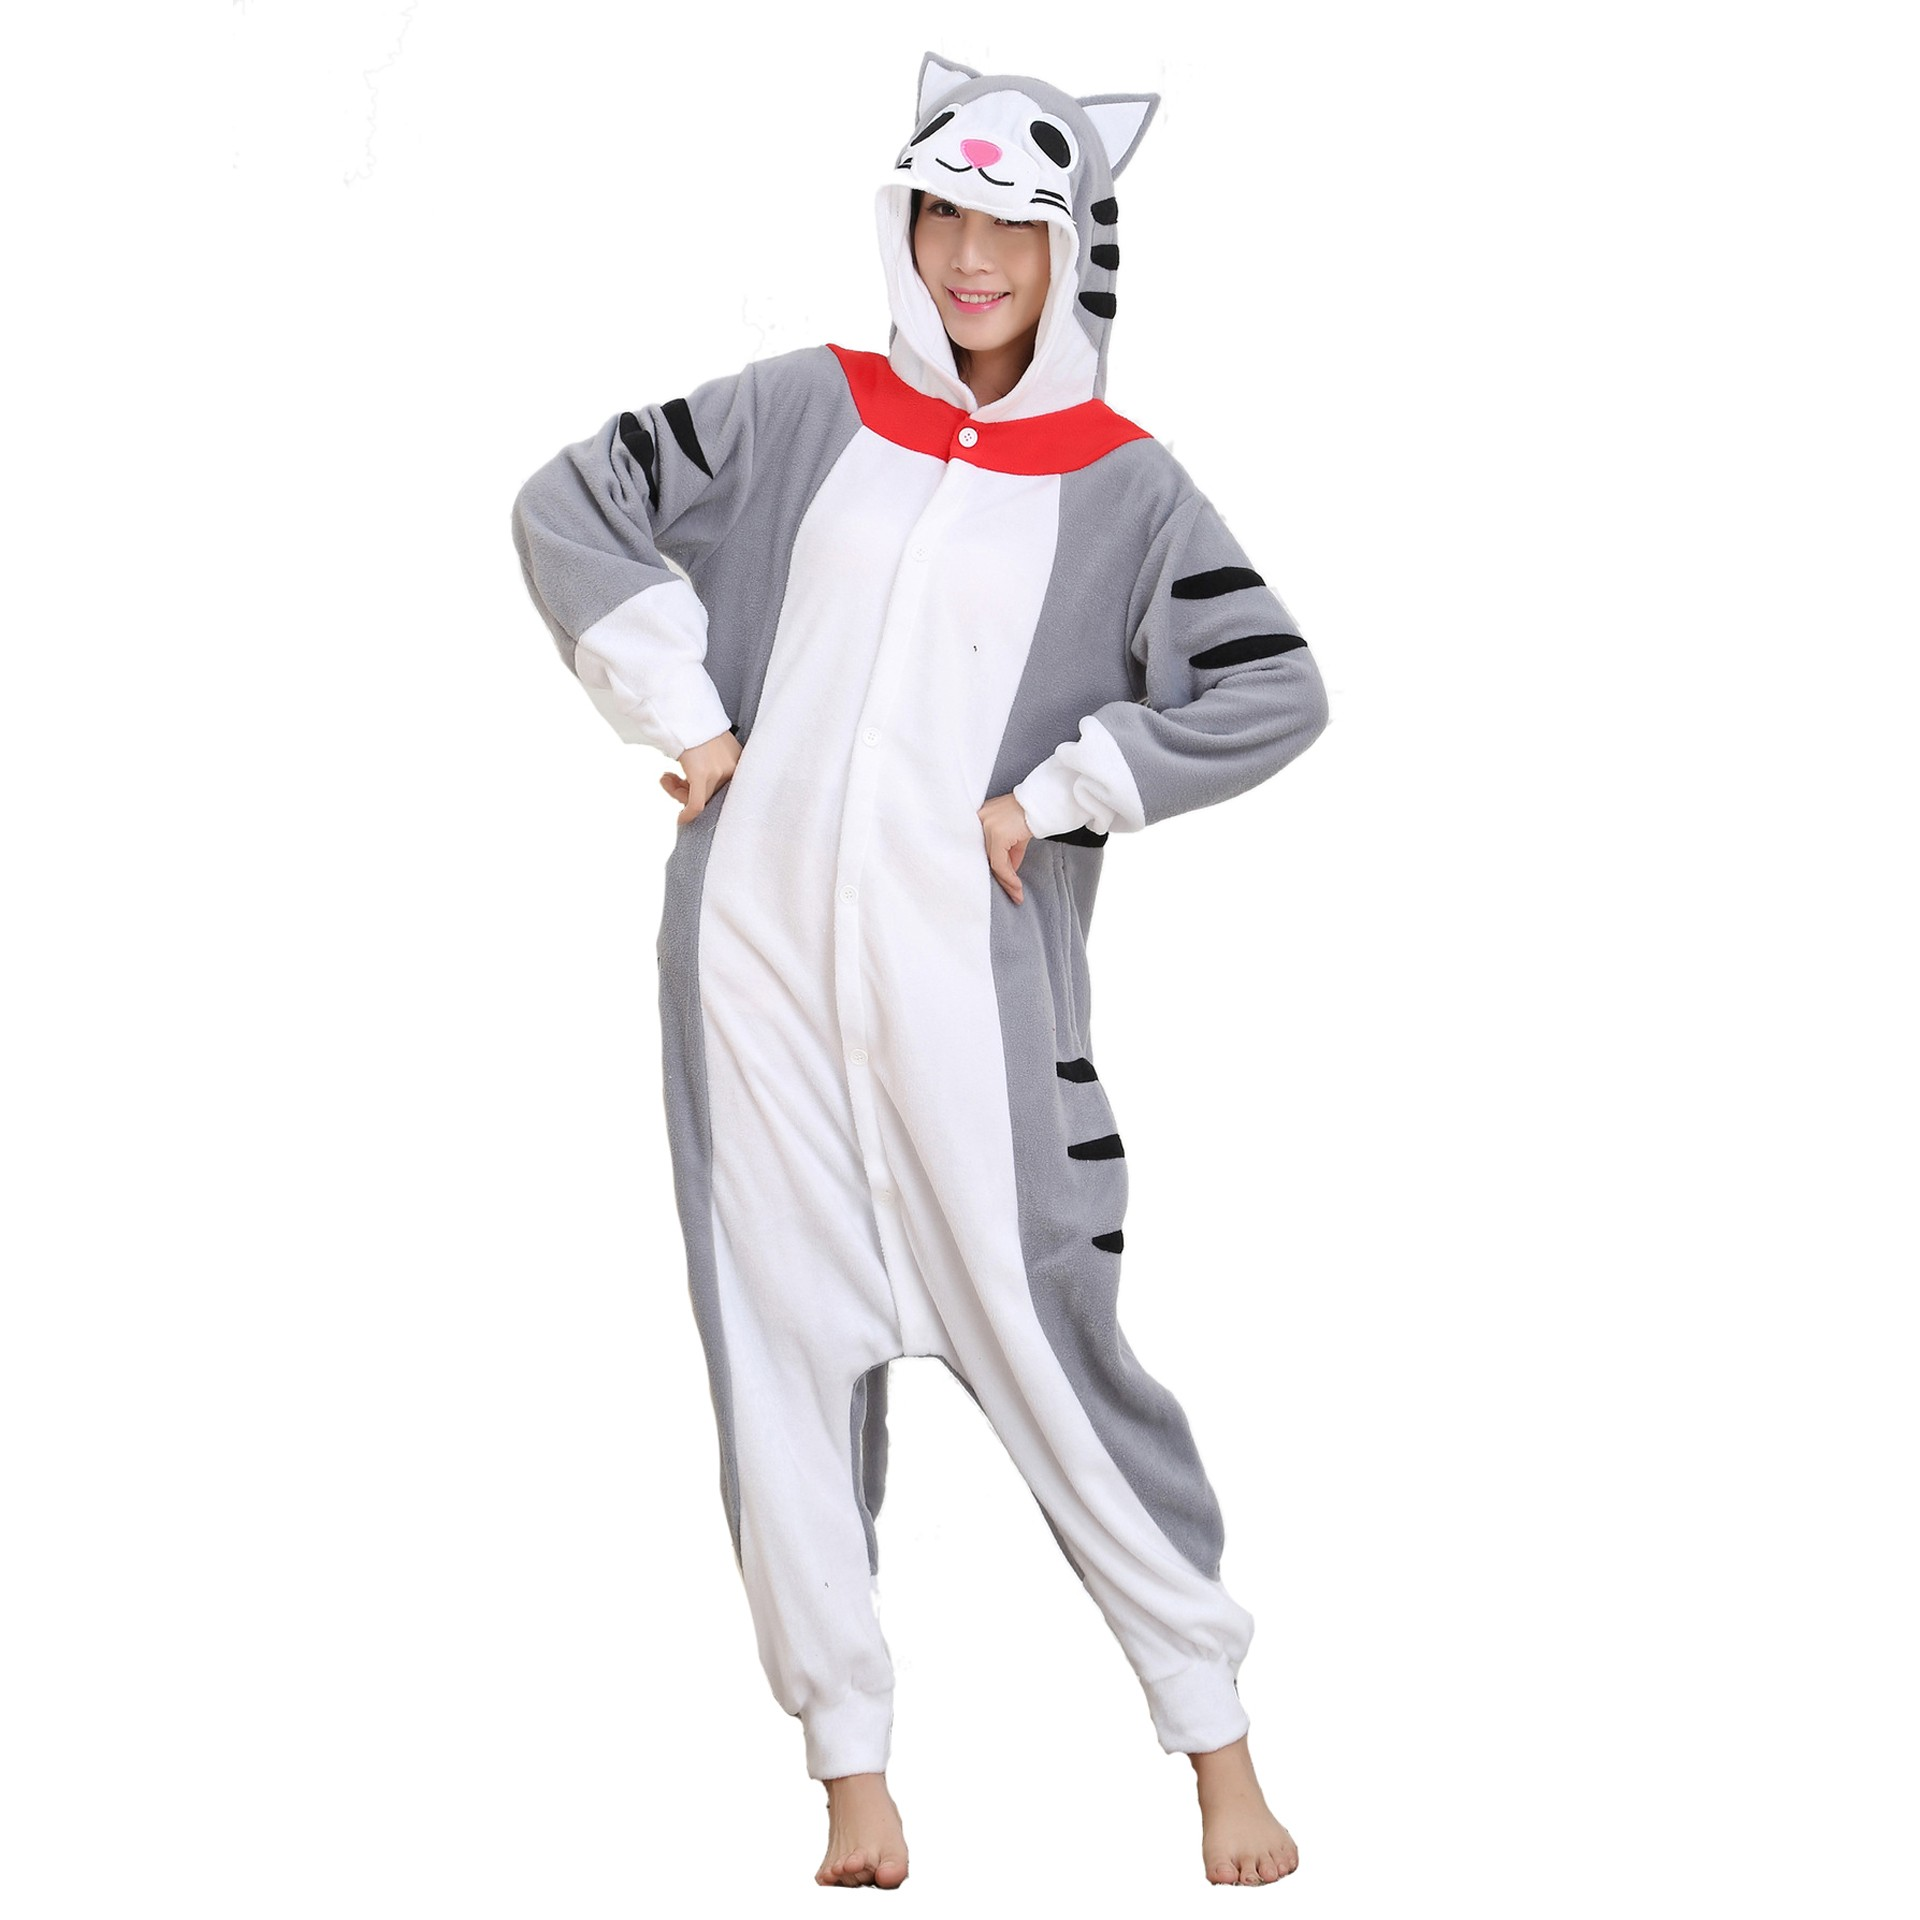 Tabby Cat Onesie Unisex Women   Men Animal Kigurumi Pajama Halloween Party  Costumes 68e7ae157